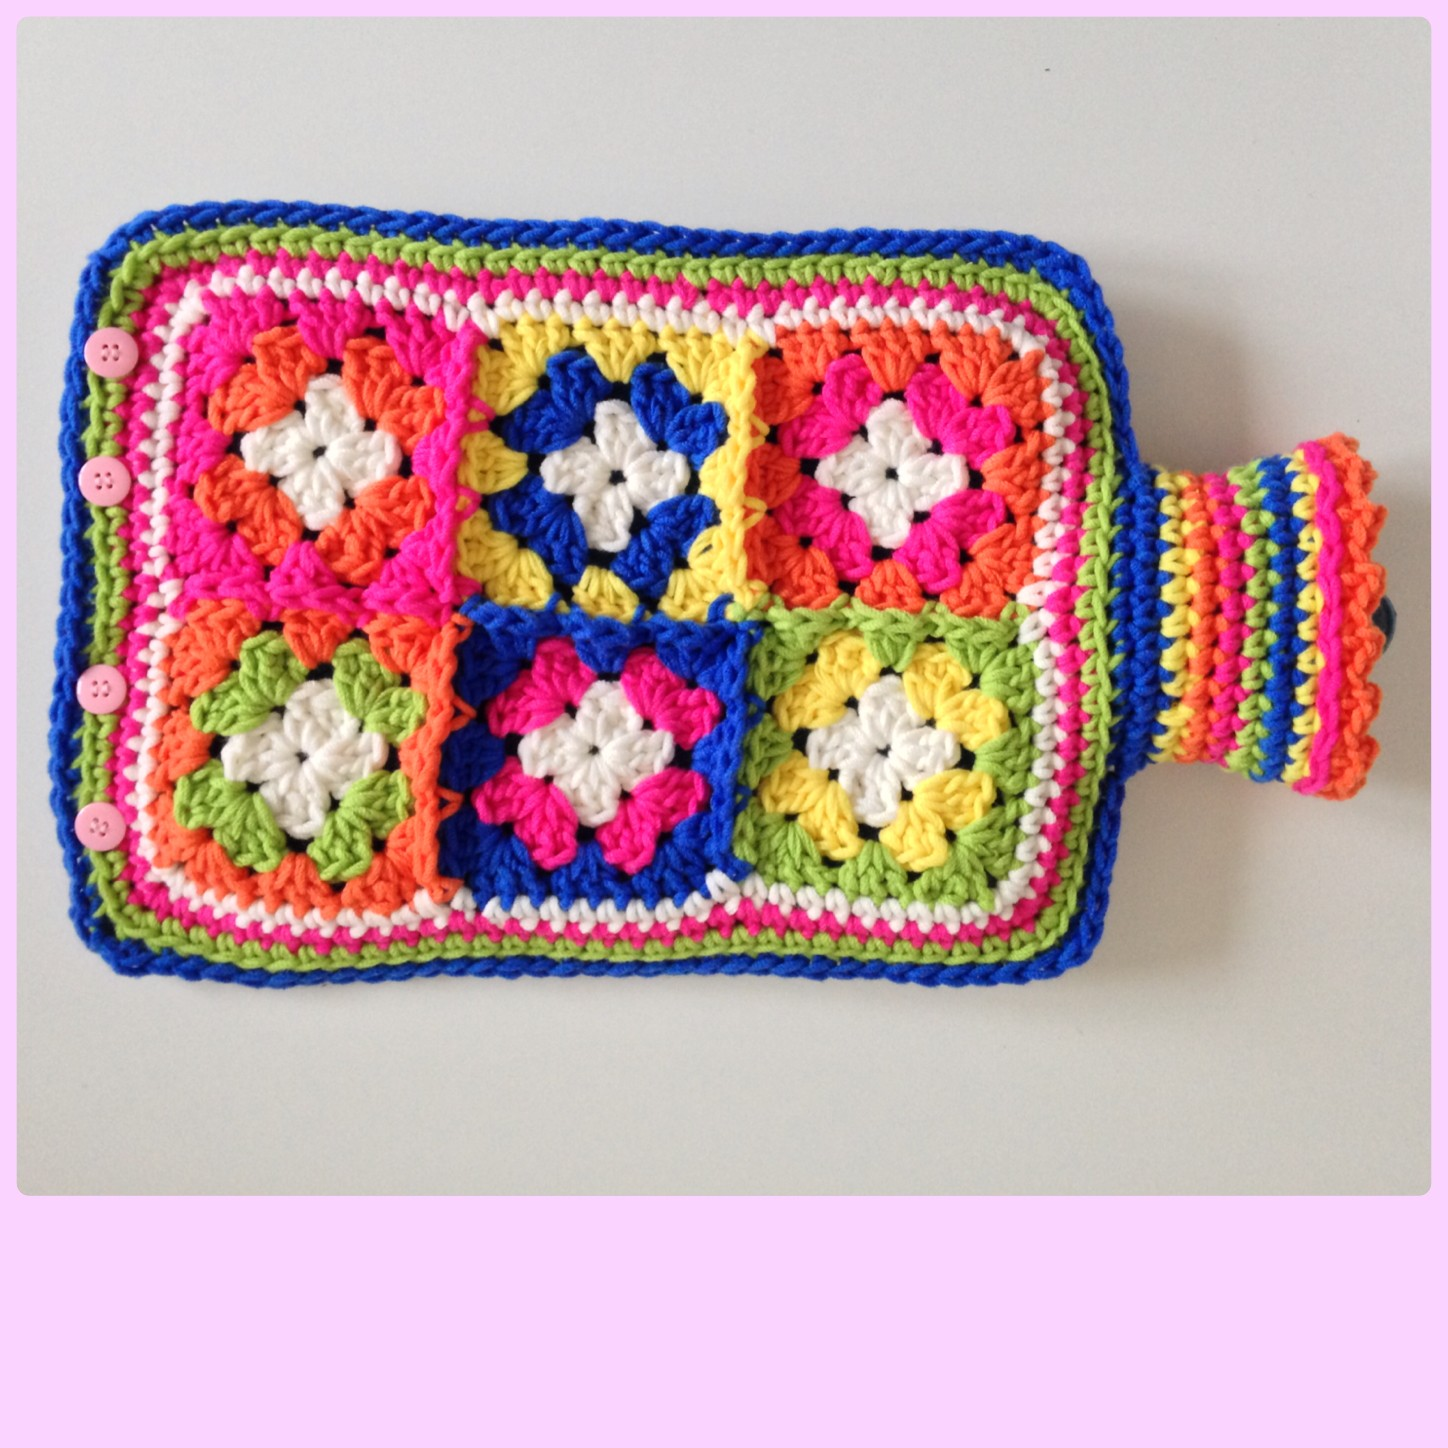 Crochet Granny Square Hot Water Bottle Cover Pattern : Hot water bottle cover maRRose ? Colorful Crochet & Crafts